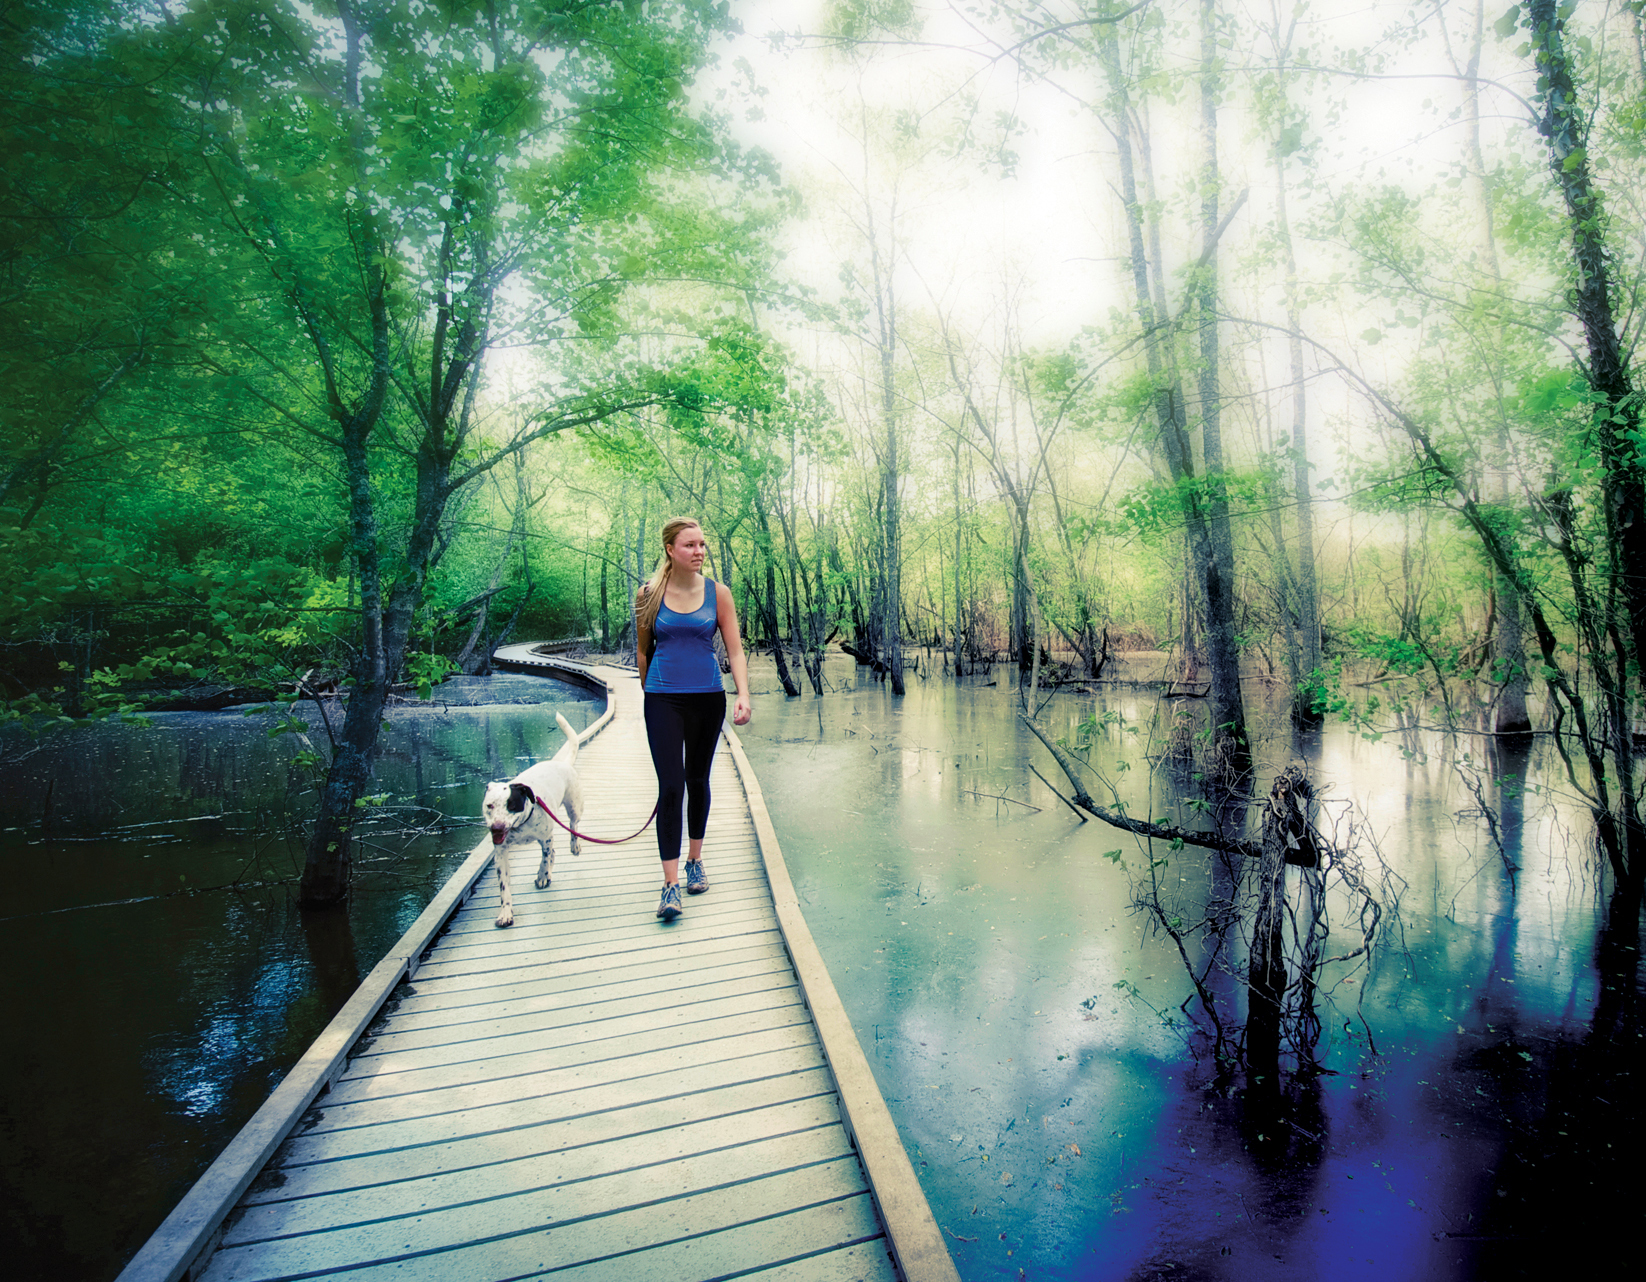 Woman walking dog on boardwalk over water